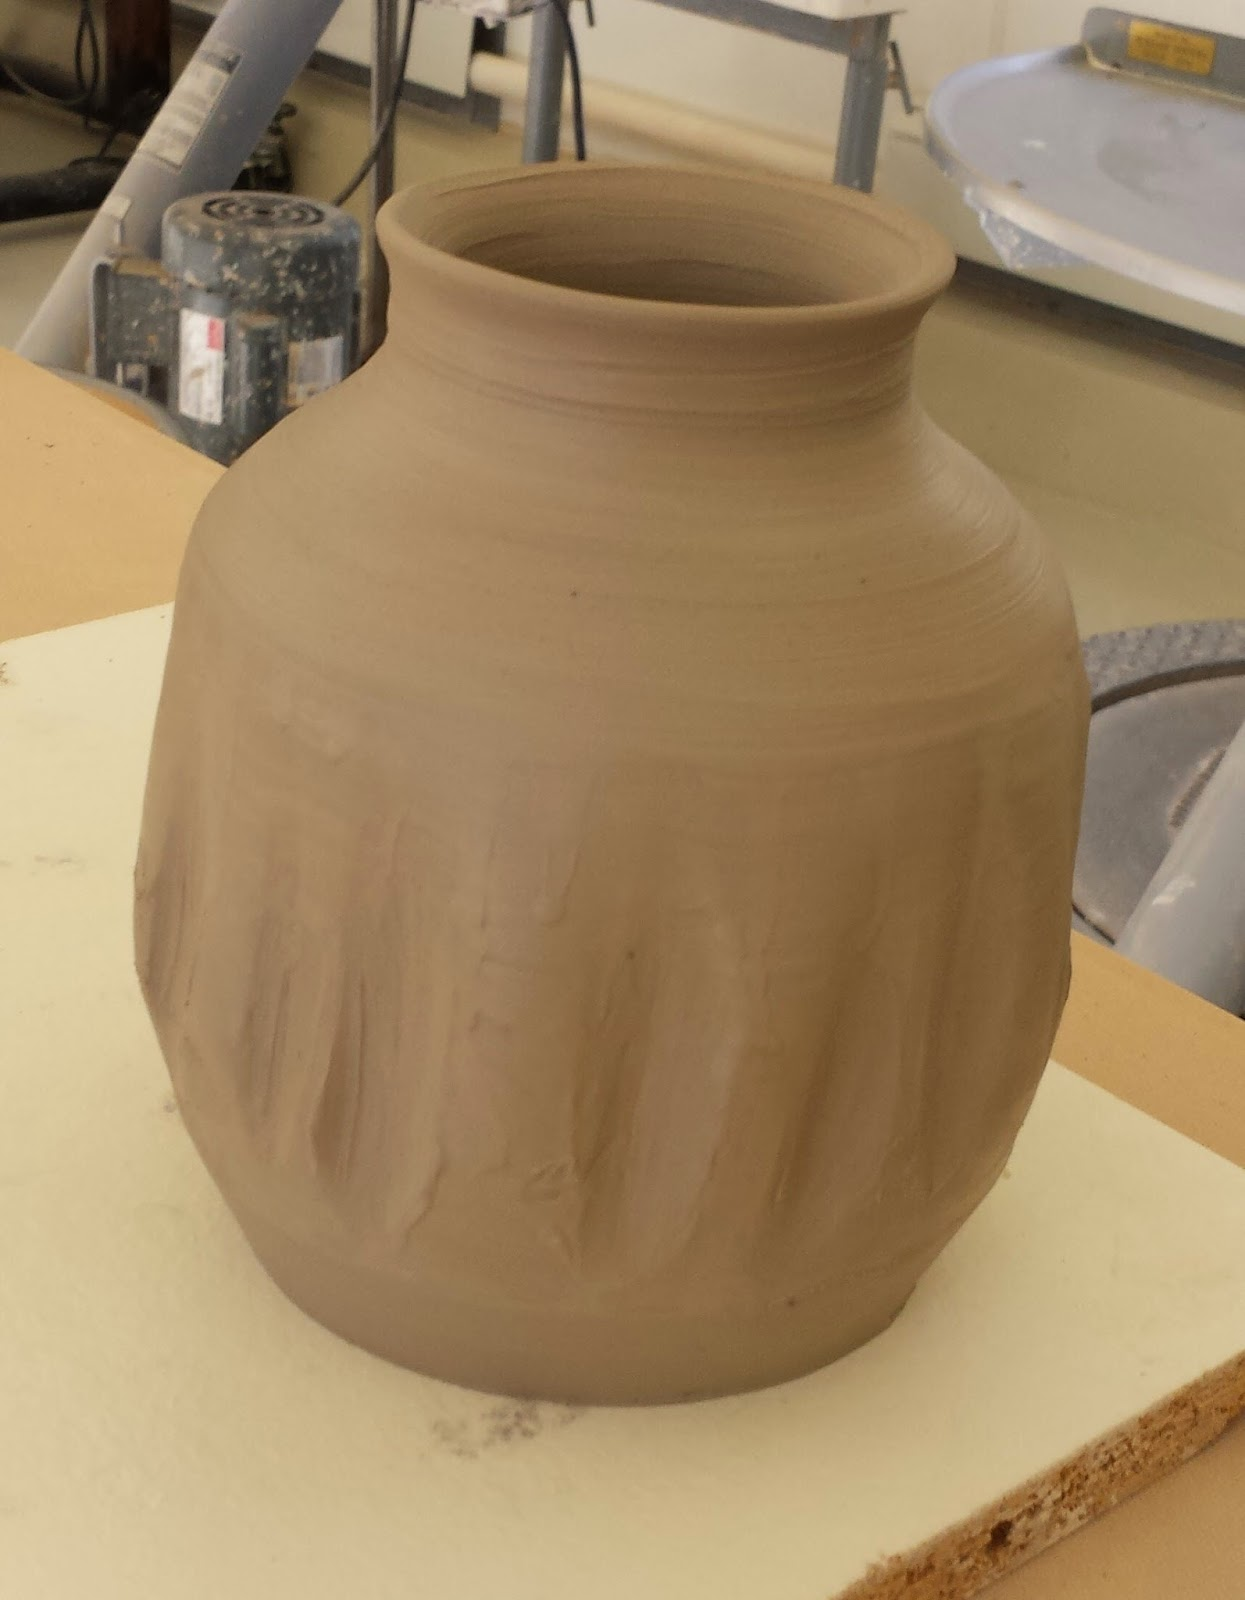 Stoneware clay pot in progress.